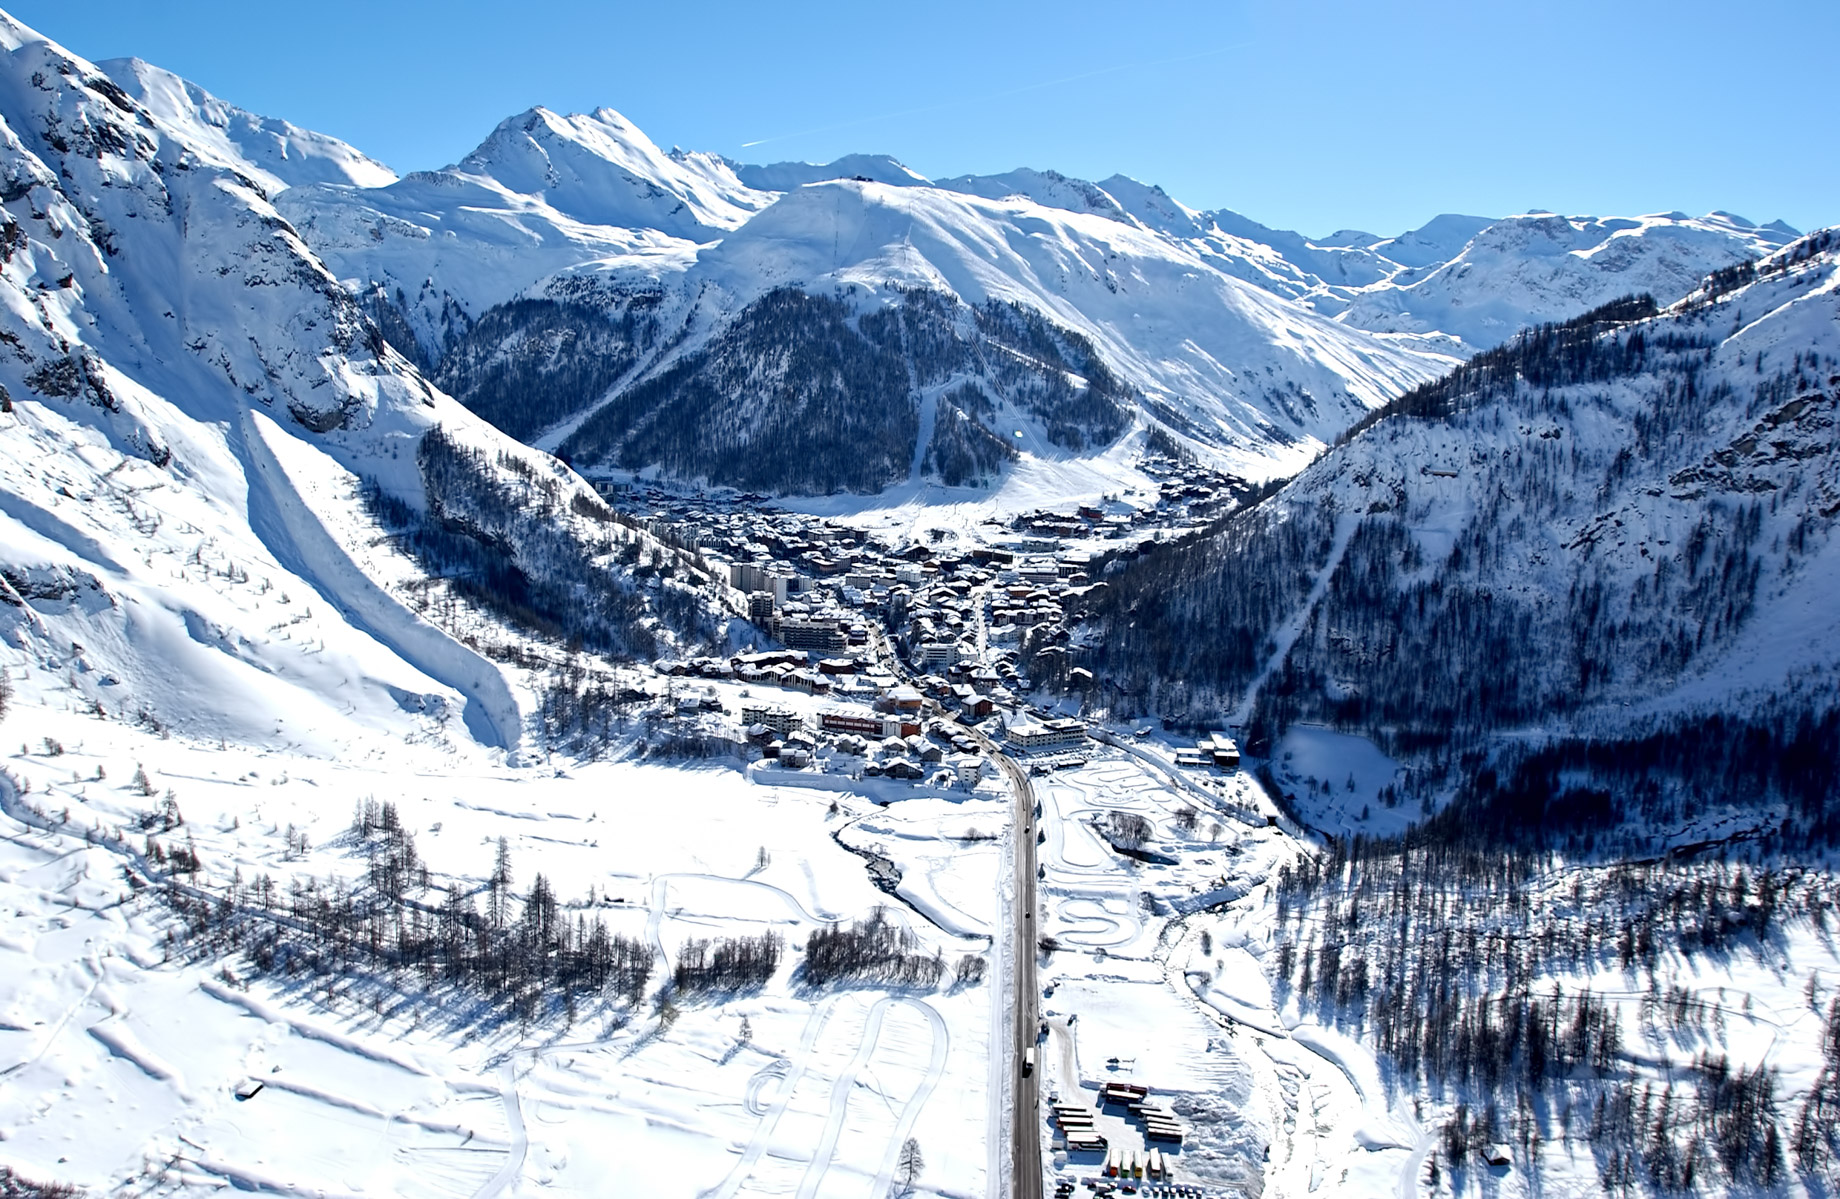 Val d'Isère - French Alps Mountain Resort - An Exclusive Très Chic Luxury Winter Paradise